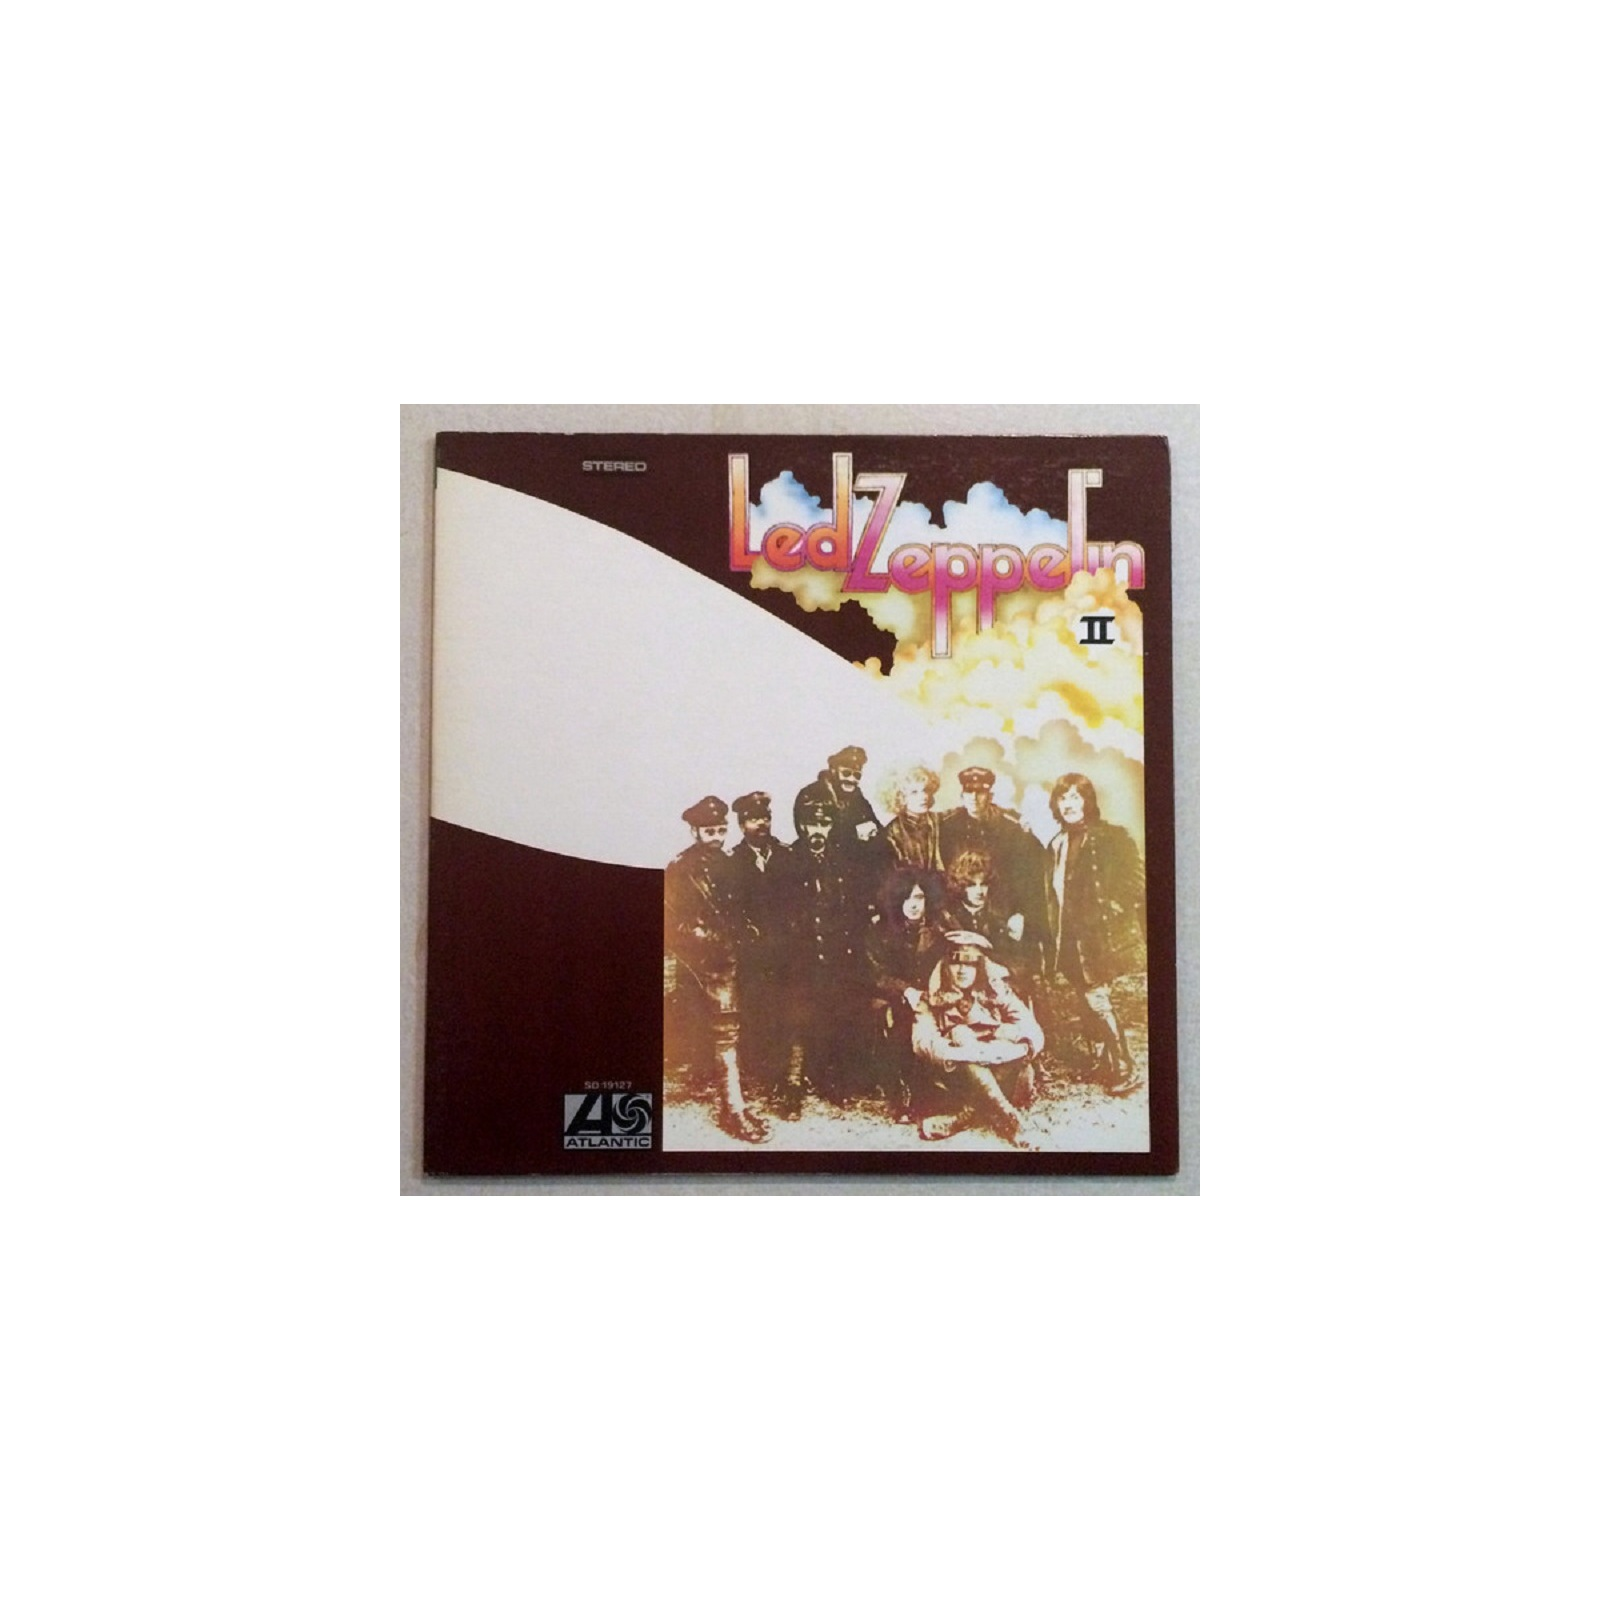 LED ZEPPELIN - LED ZEPPELIN II JIMMY PAGE REMASTERED GATEFOLD 180G VINYL